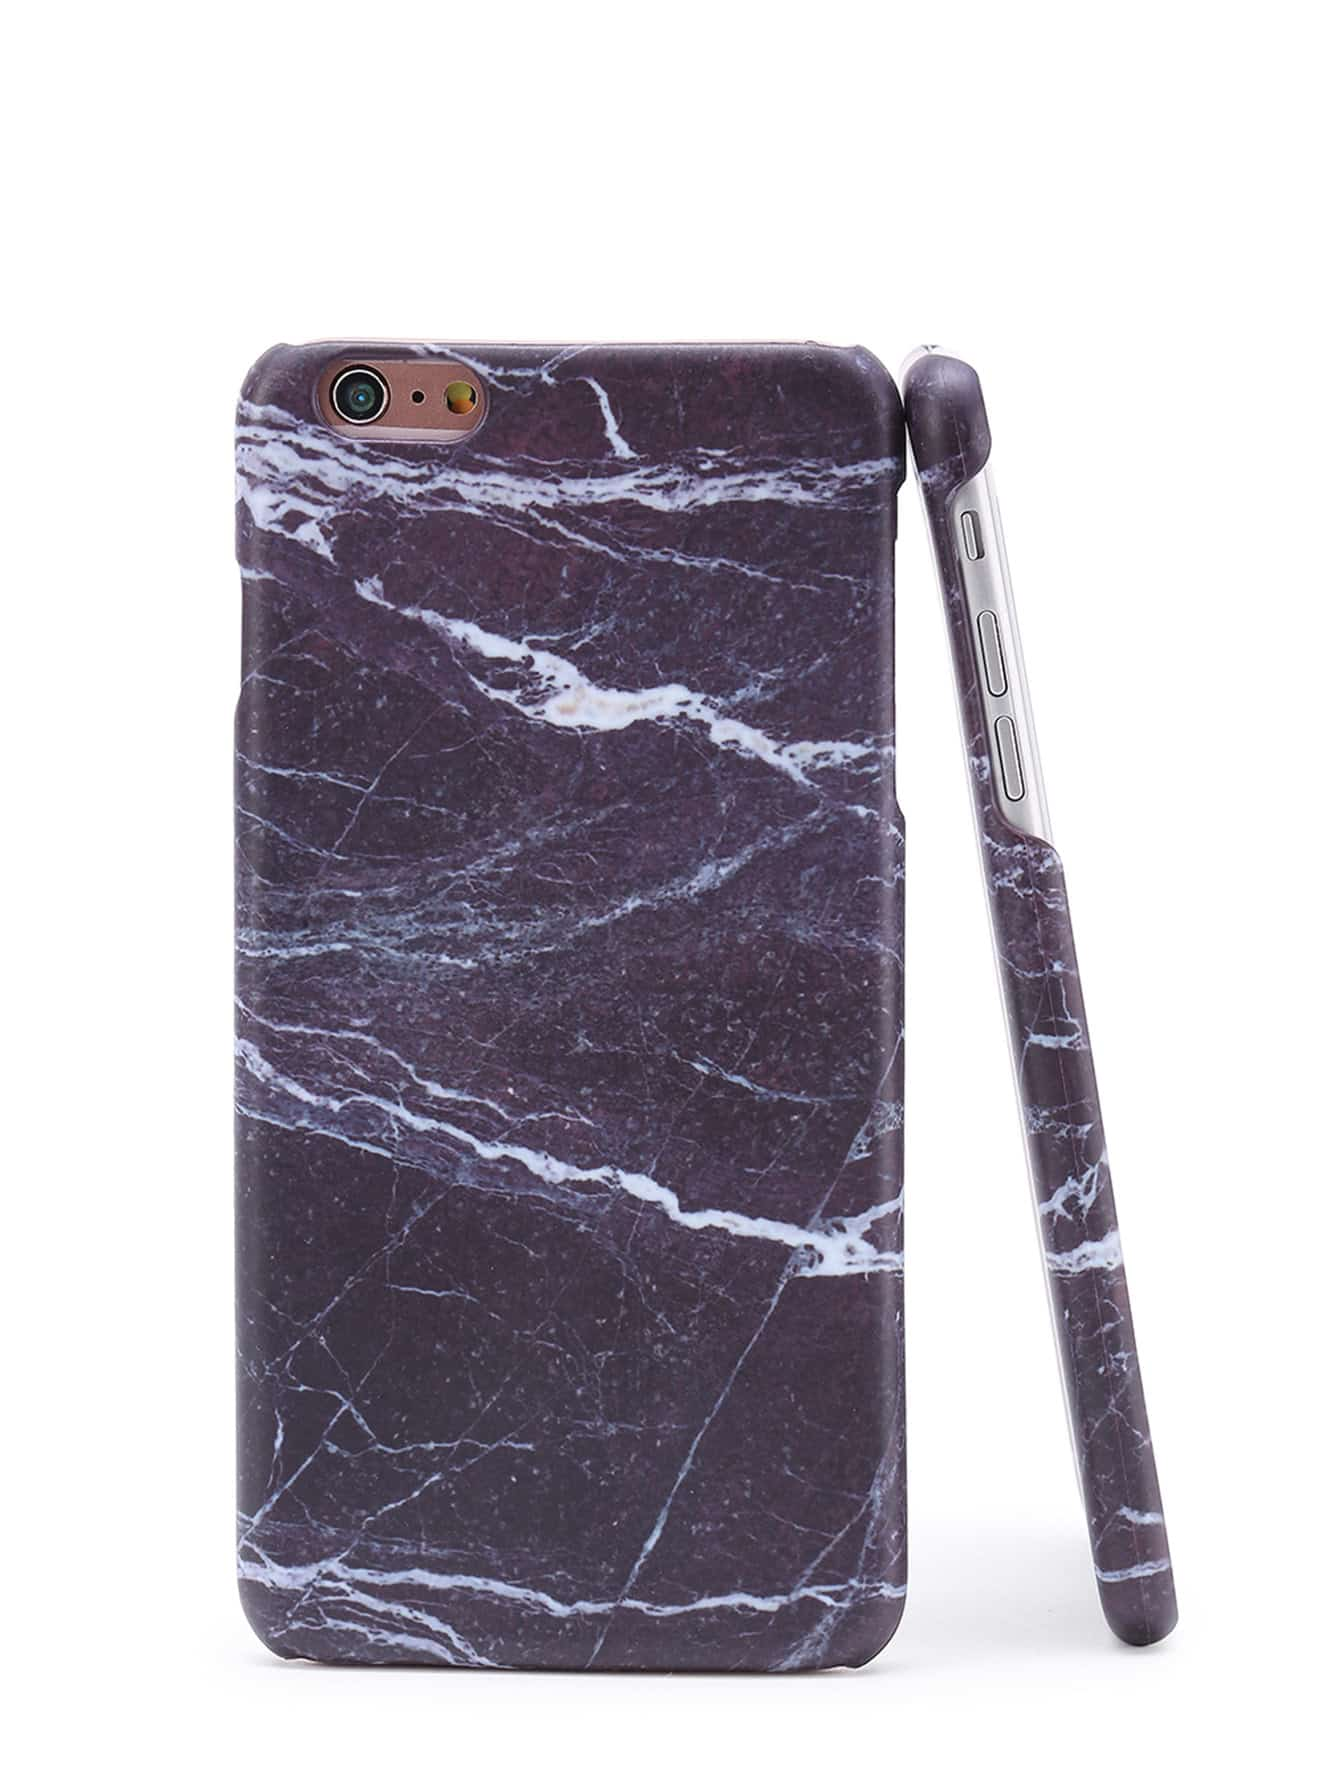 Marble Pattern iPhone Case marble pattern iphone case